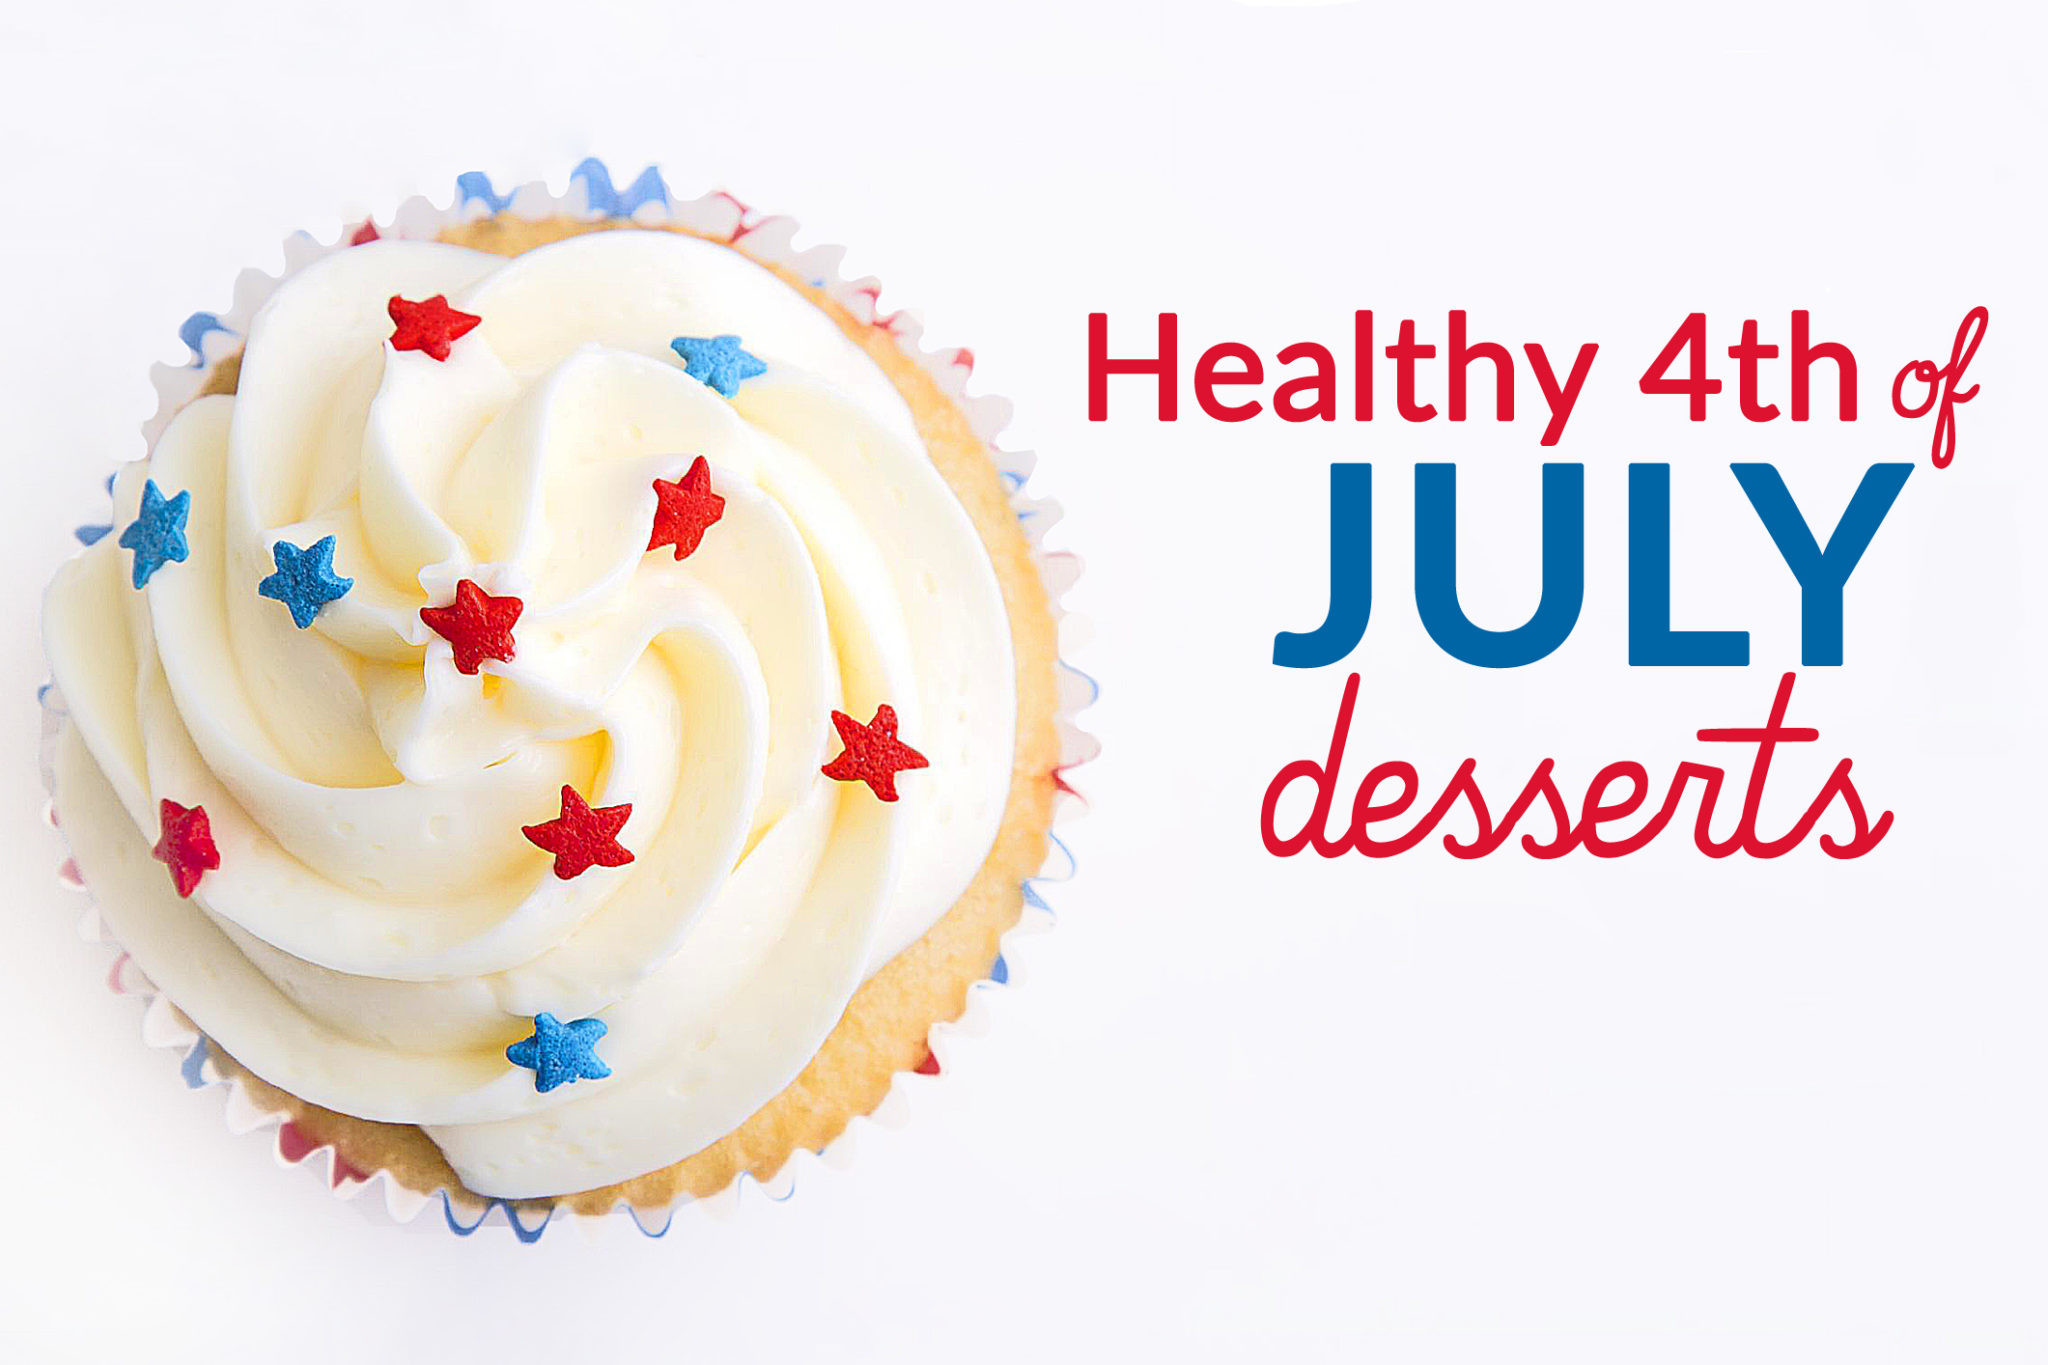 Healthy 4Th Of July Desserts  Recipe Roundup Healthy 4th of July Desserts Healthy